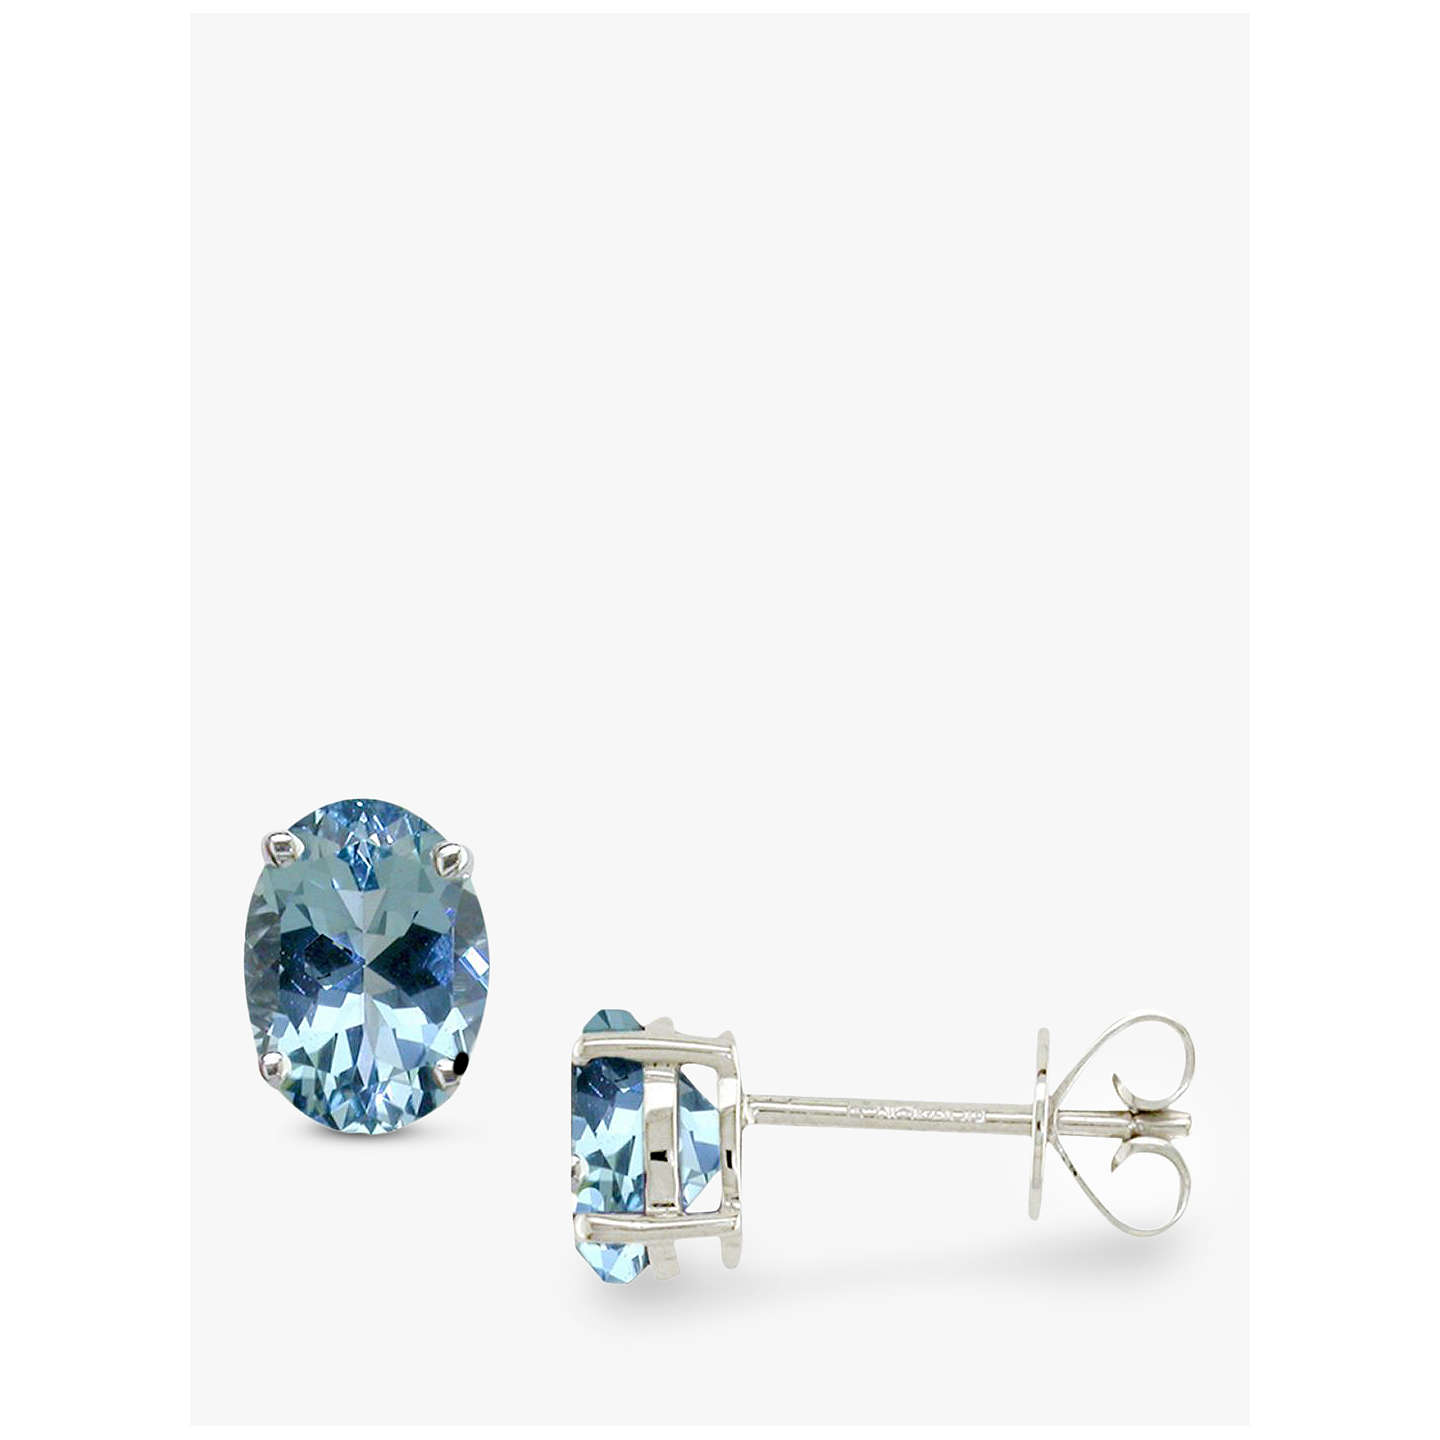 pear marine jewellery white from gemstone gold aqua stud earrings image aquamarine